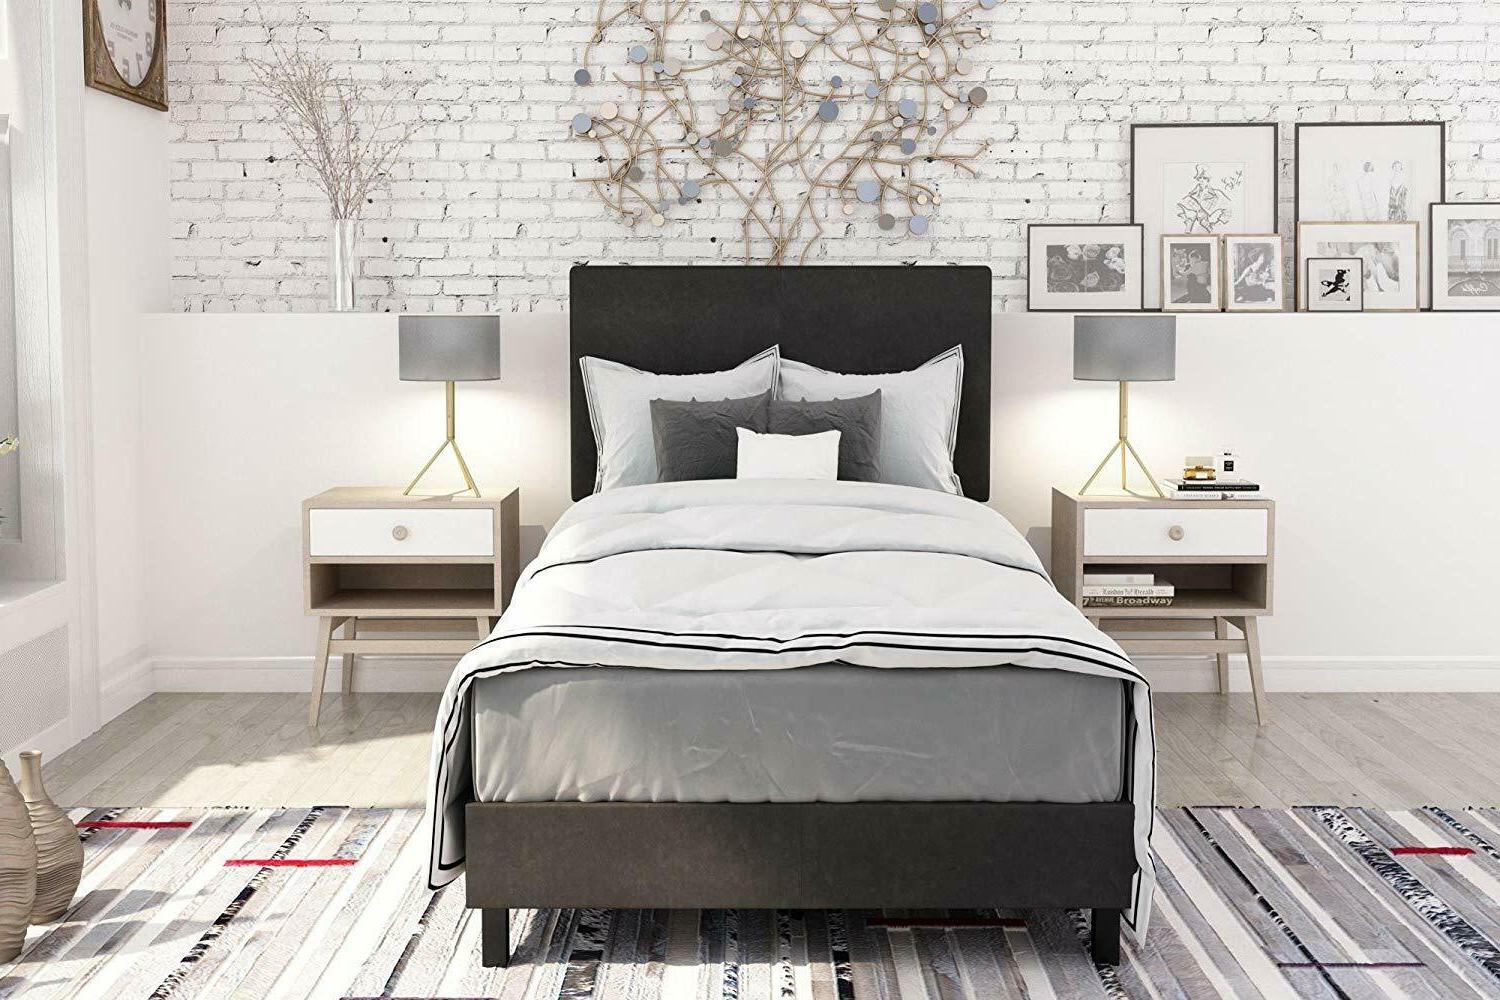 Dhp Janford Bed With Chic Upholstered Headboard, Black Faux Leather,